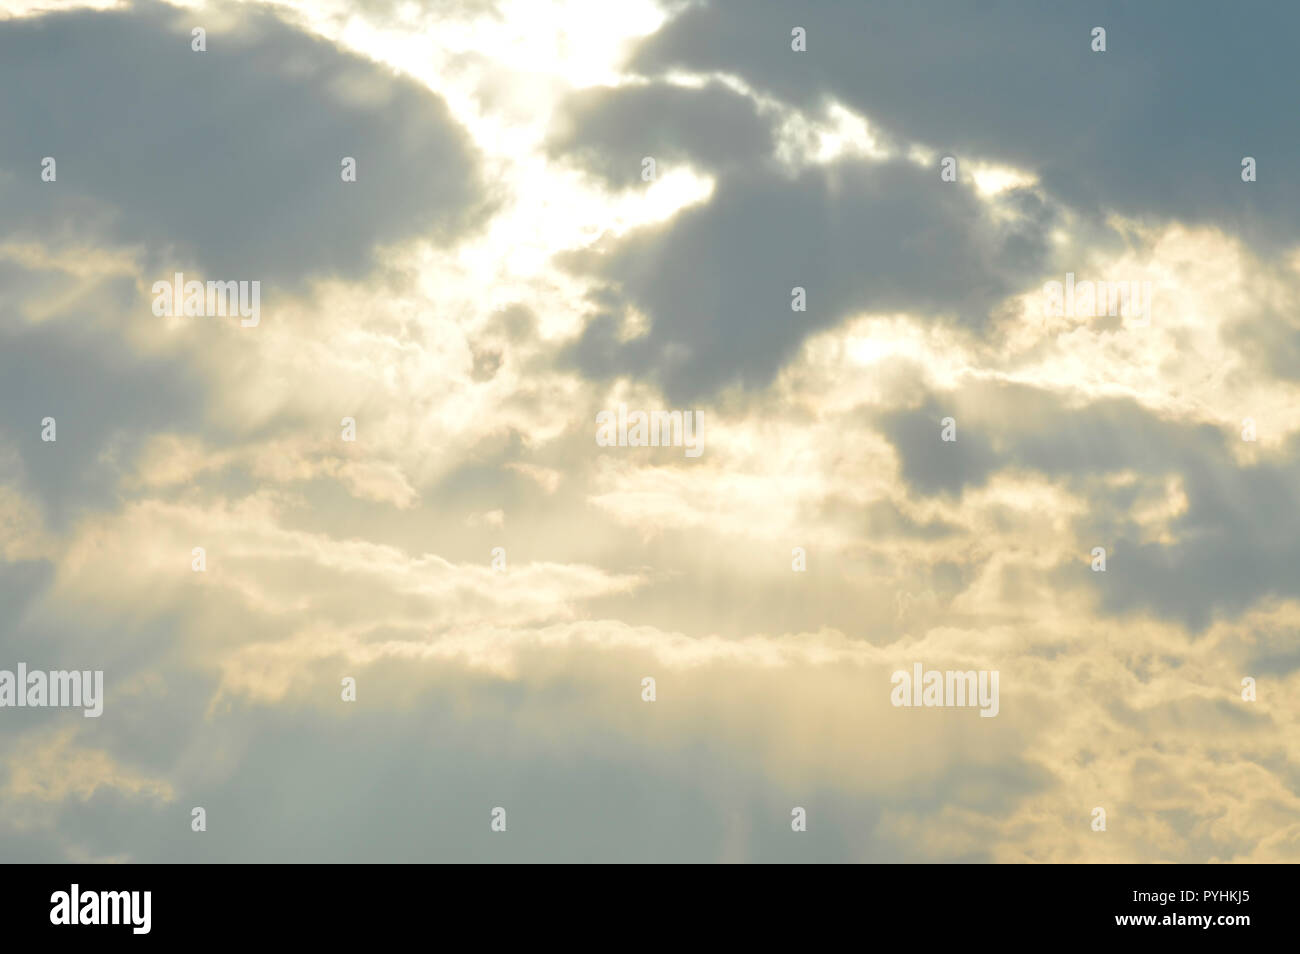 Yellow sunlight streaming through a light cloud cover. - Stock Image